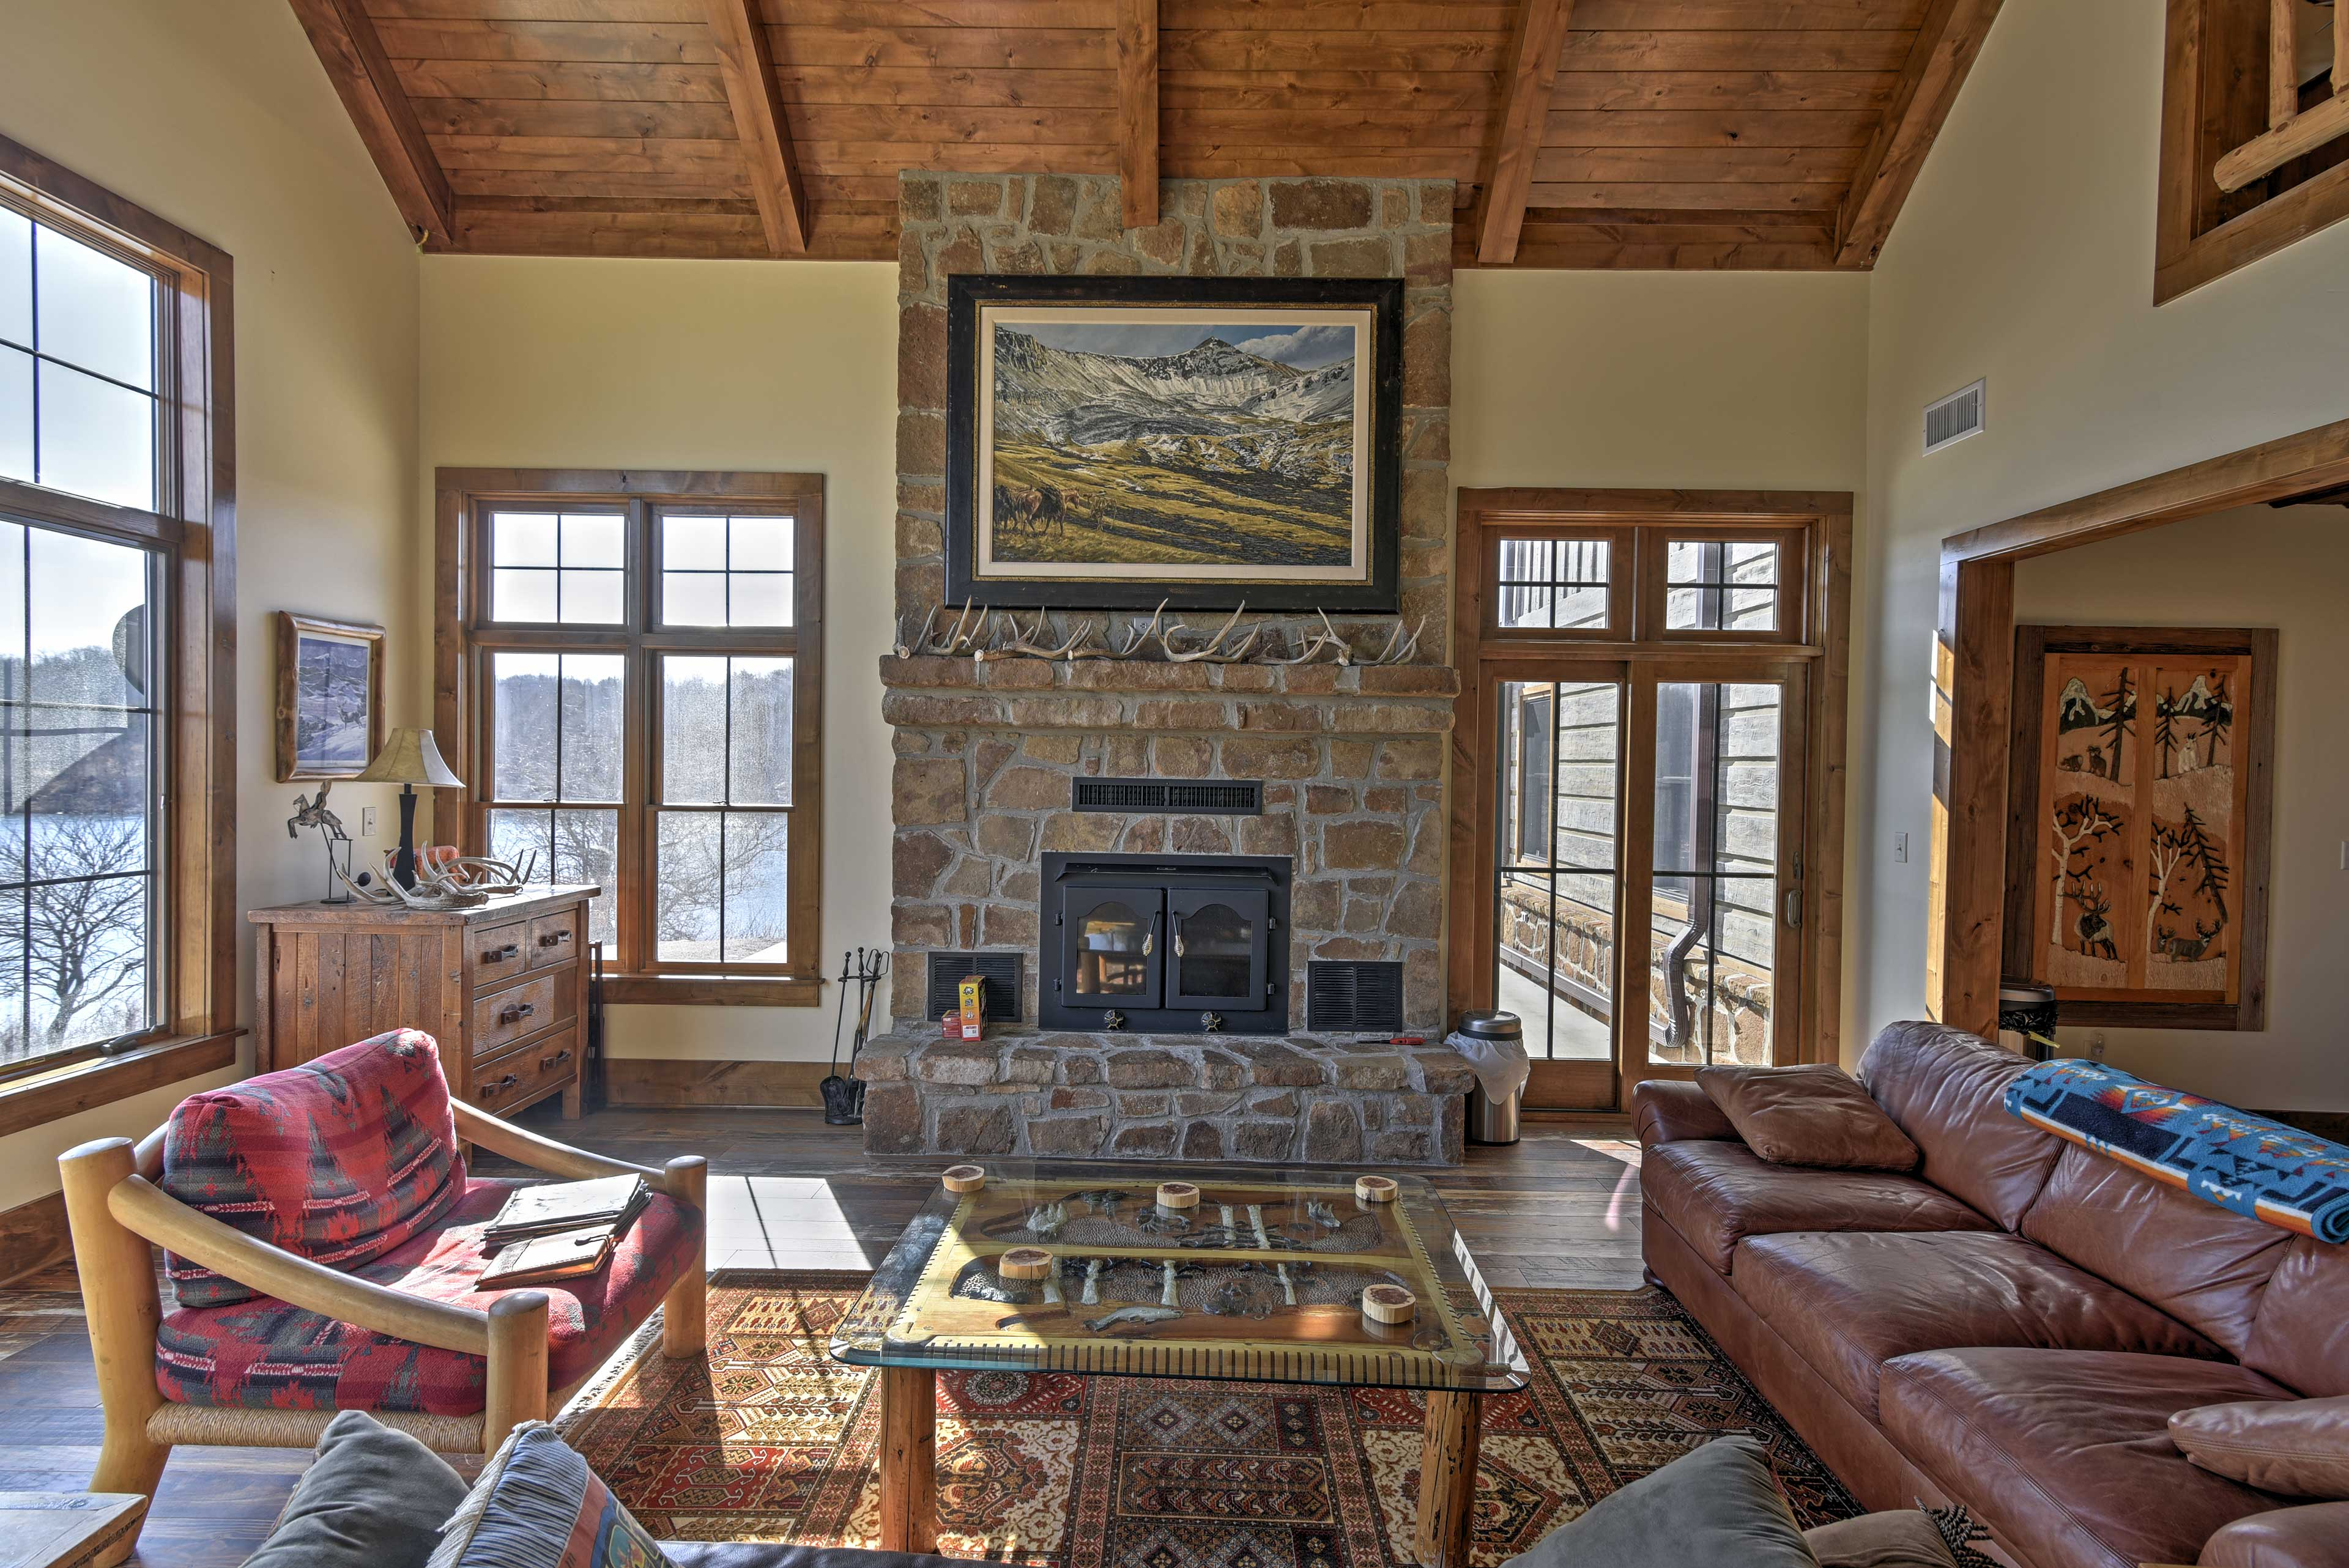 Warm your toes by the wood-burning fireplace.